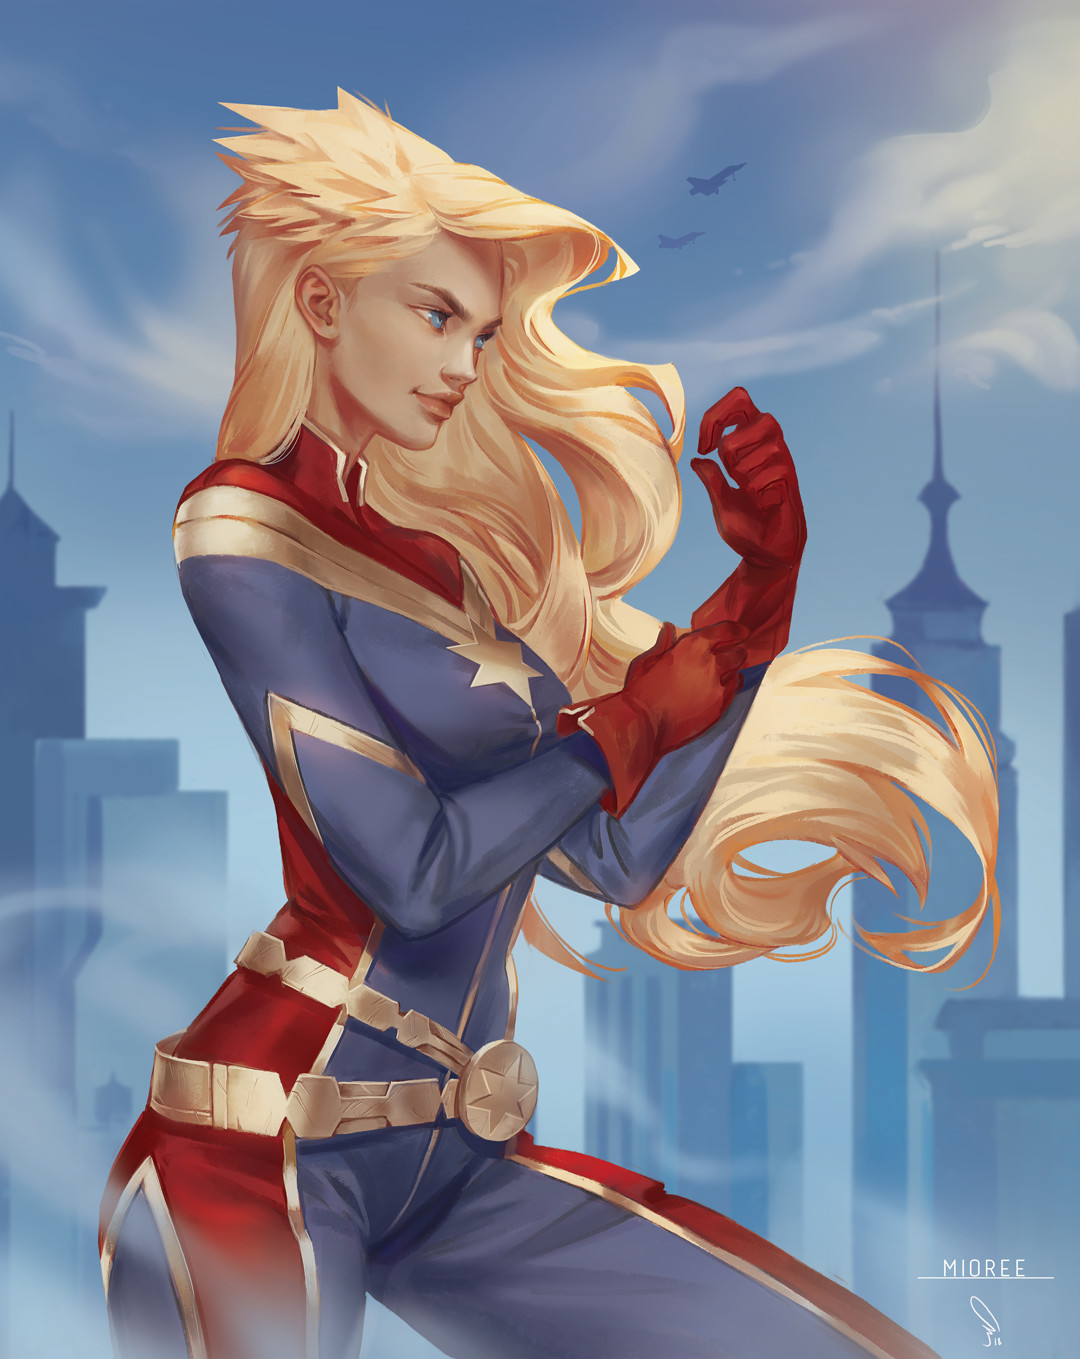 Mioree captain marvel samples dp jan 2018 small